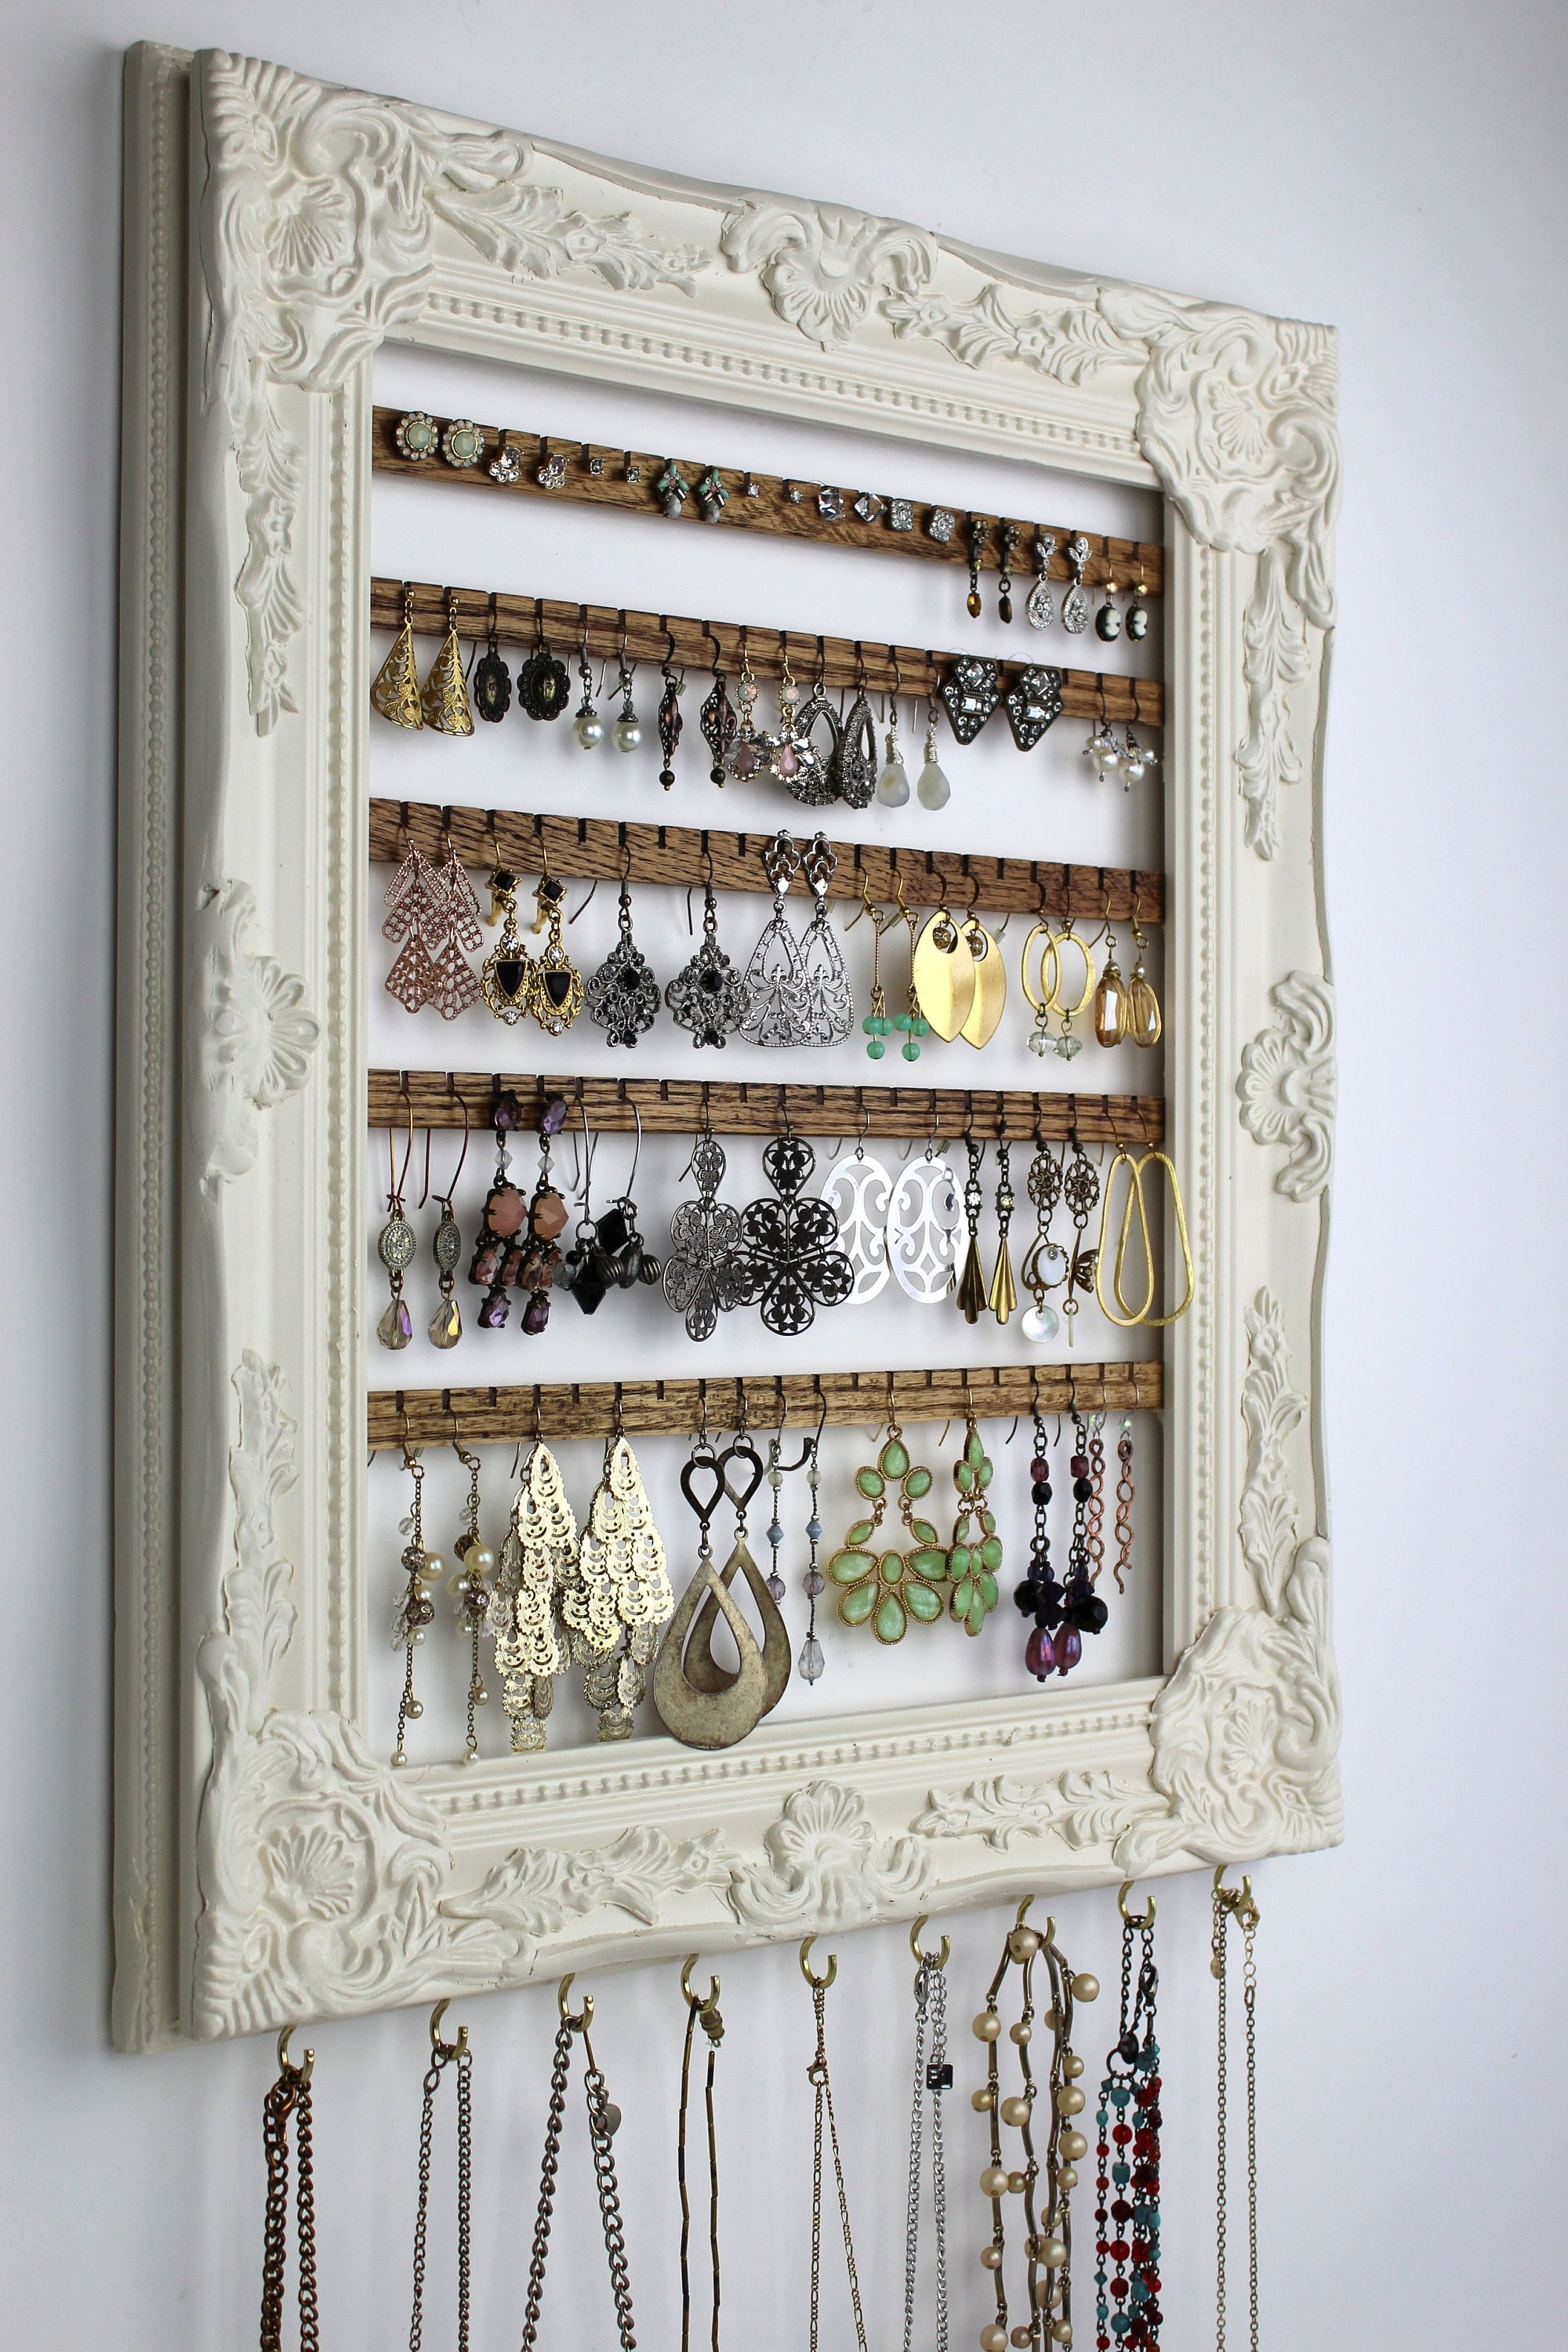 Cream Wall Mount Jewelry Organizer Framed Earring Hanger Hanging Jewelry Organizer Wall Earring Display Frame Earring Holder Frame In 2020 Jewelry Organizer Wall Wall Mount Jewelry Organizer Jewelry Wall